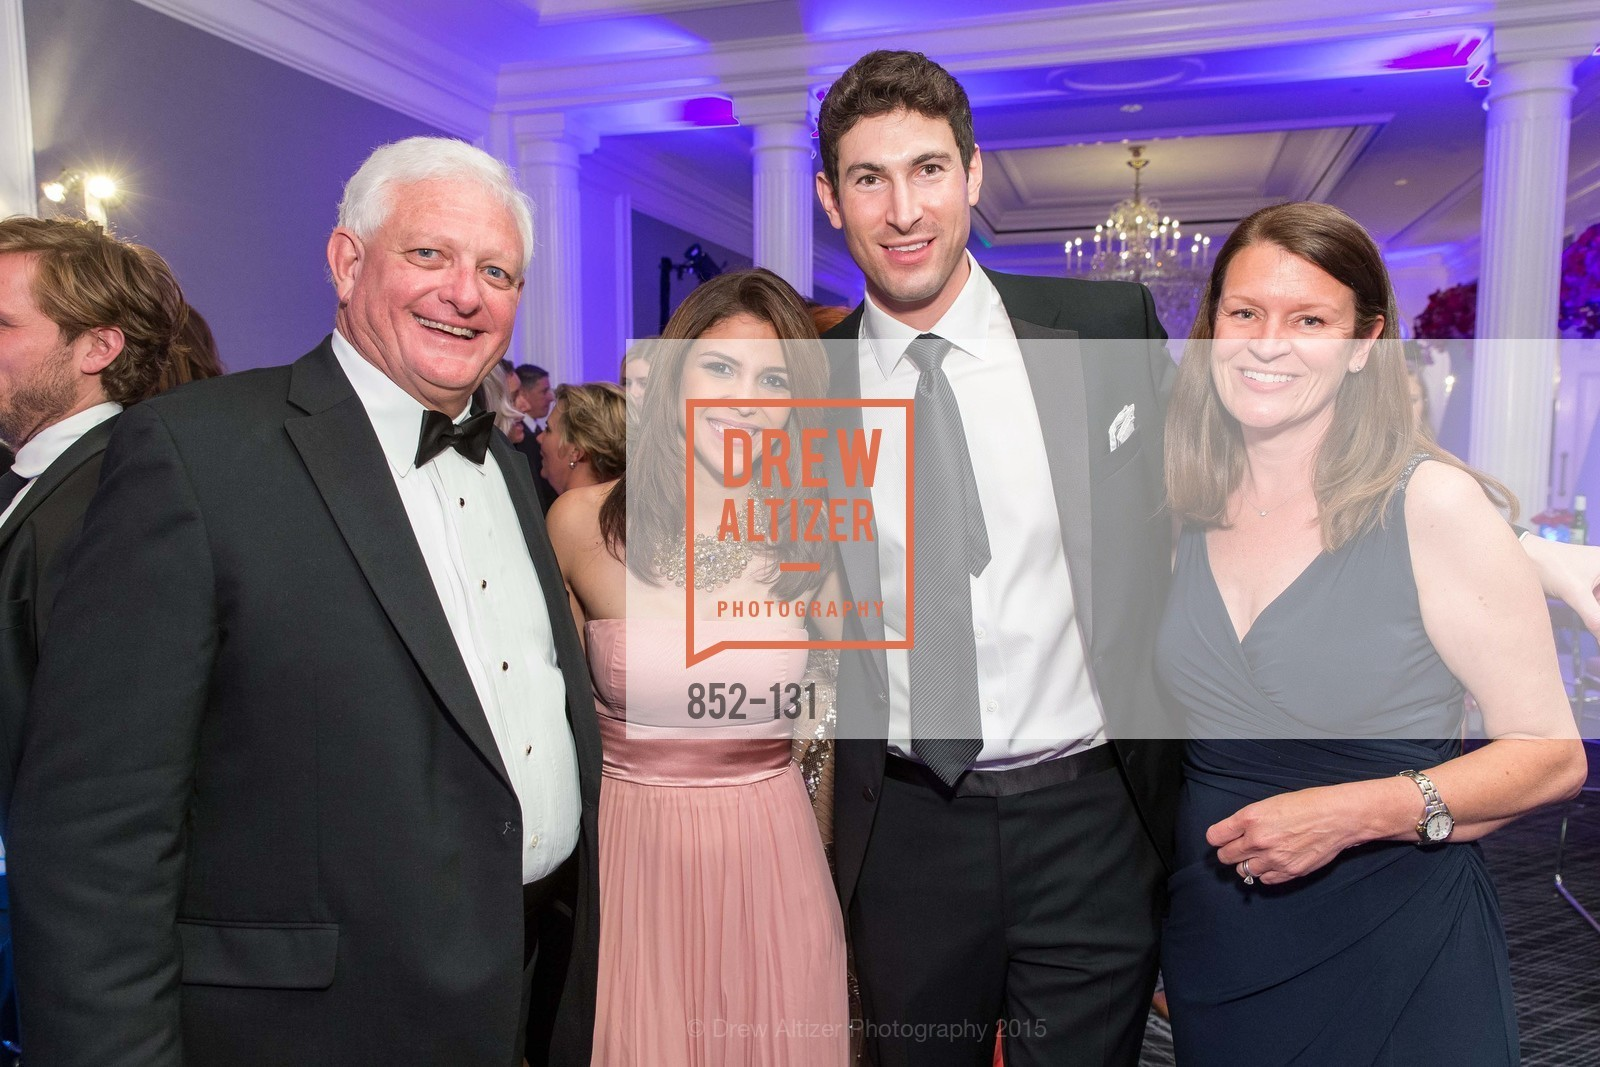 John Brady, Gabriella Dellan, Sam Brock, Shelly Jensen, JUVENILE DIABETES RESEARCH FOUNDATION  Hope Gala, The Ritz-Carlton, May 29th, 2015,Drew Altizer, Drew Altizer Photography, full-service agency, private events, San Francisco photographer, photographer california